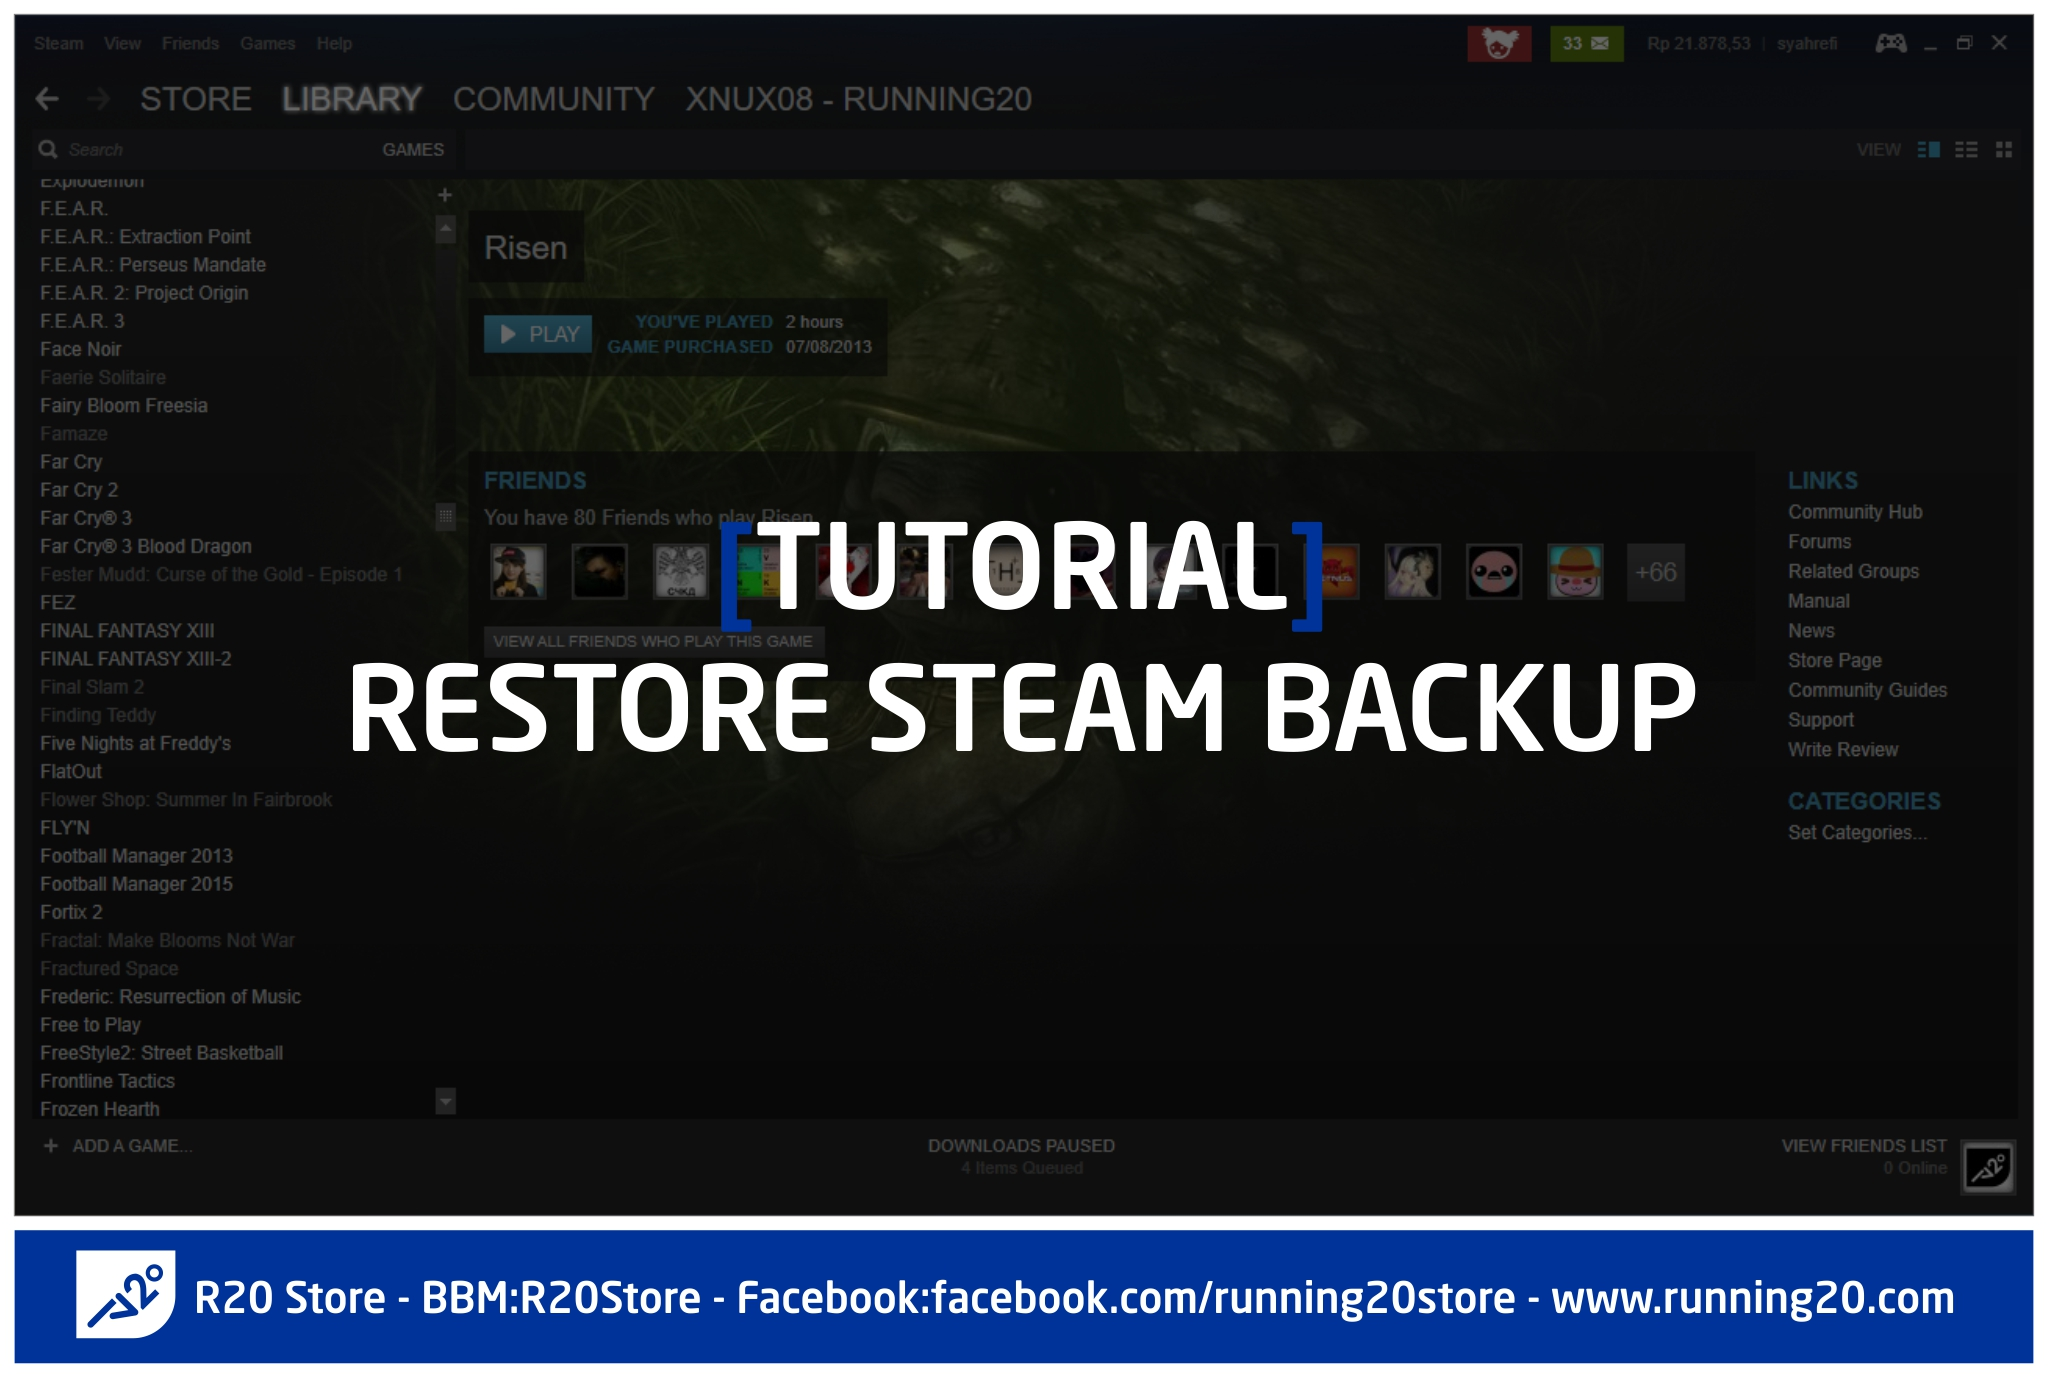 Tutorial Restore Steam Backup